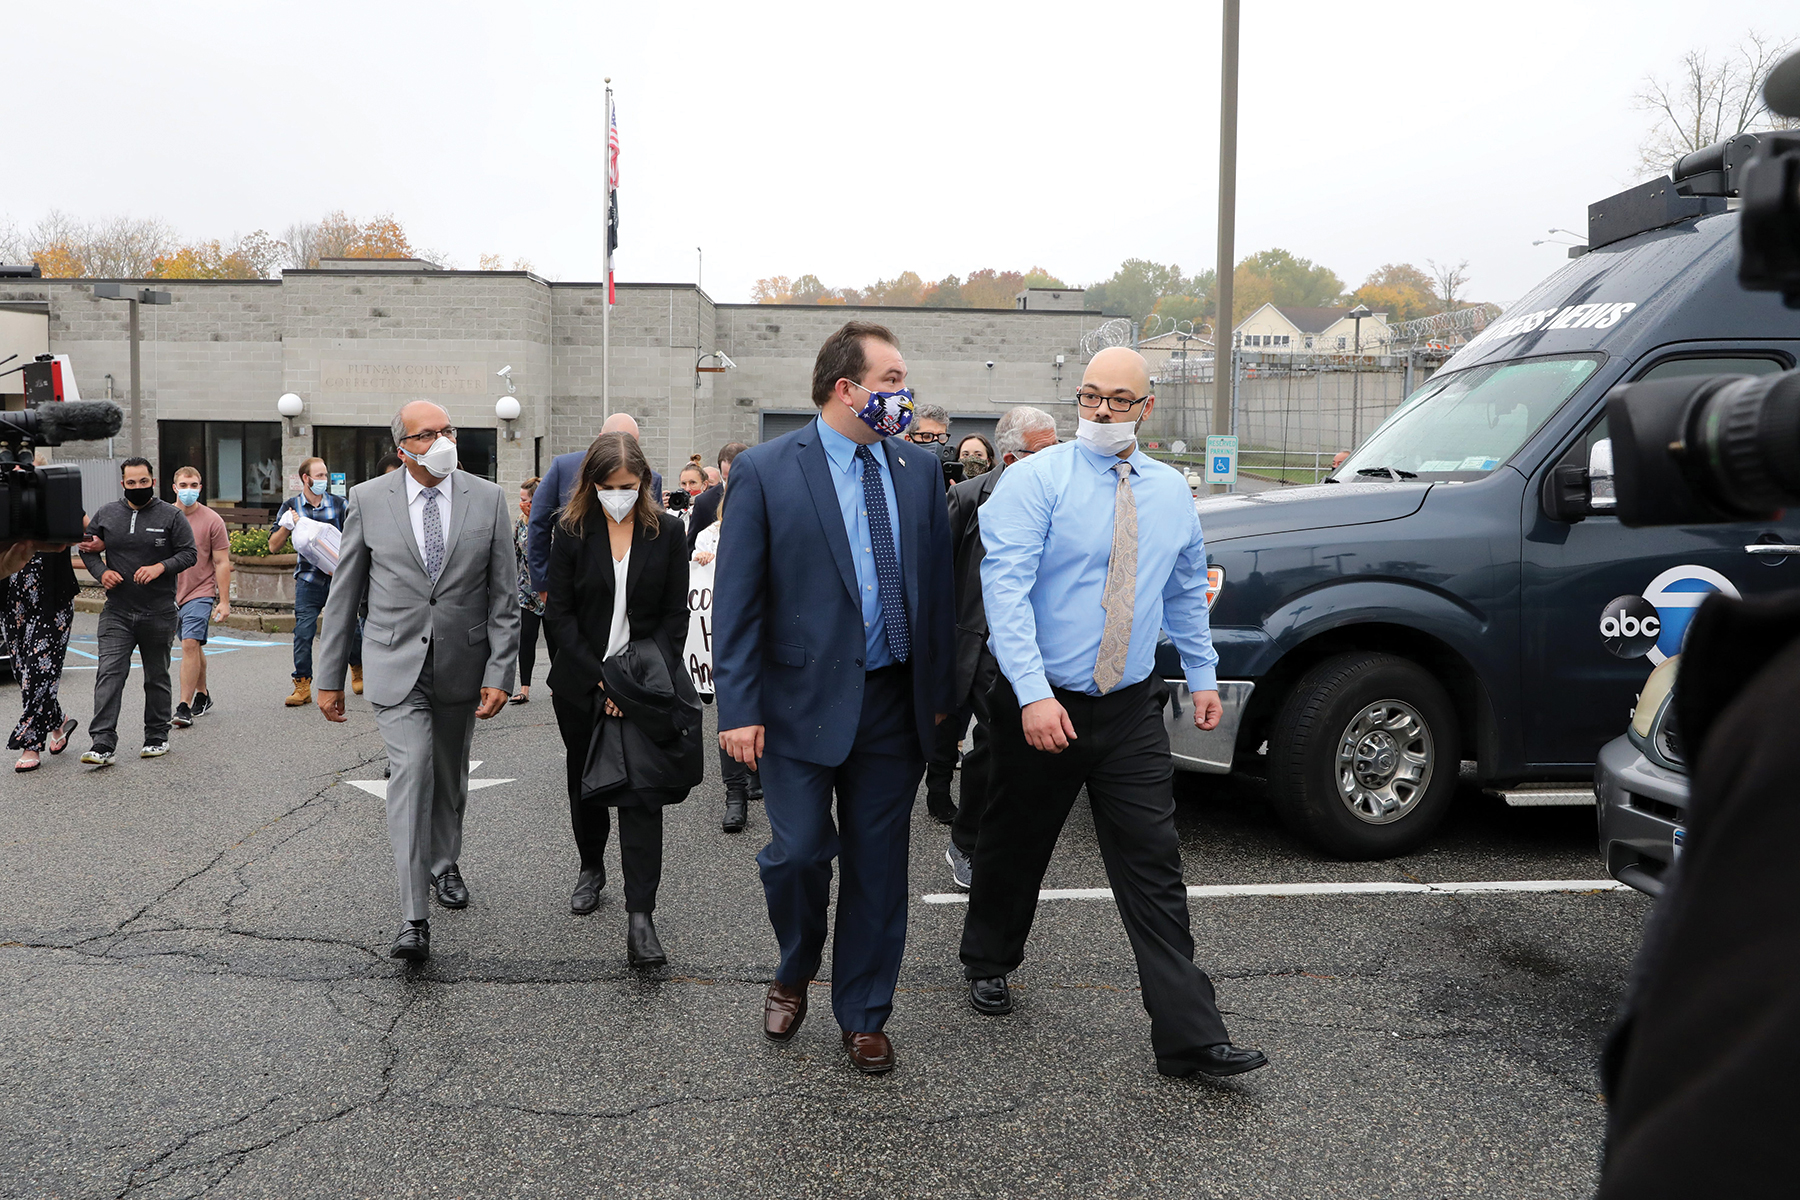 Andrew Krivak, right, walks with exoneree Jeffrey Deskovic after being released from Putnam County jail Oct. 23, 2020 in Carmel. Krivak was freed after 24 years in custody since his arrest in the 1994 rape and murder of 12-year-old Josette Wright. A judge overturned his conviction last year and ordered a new trial.Andrew Krivak Free